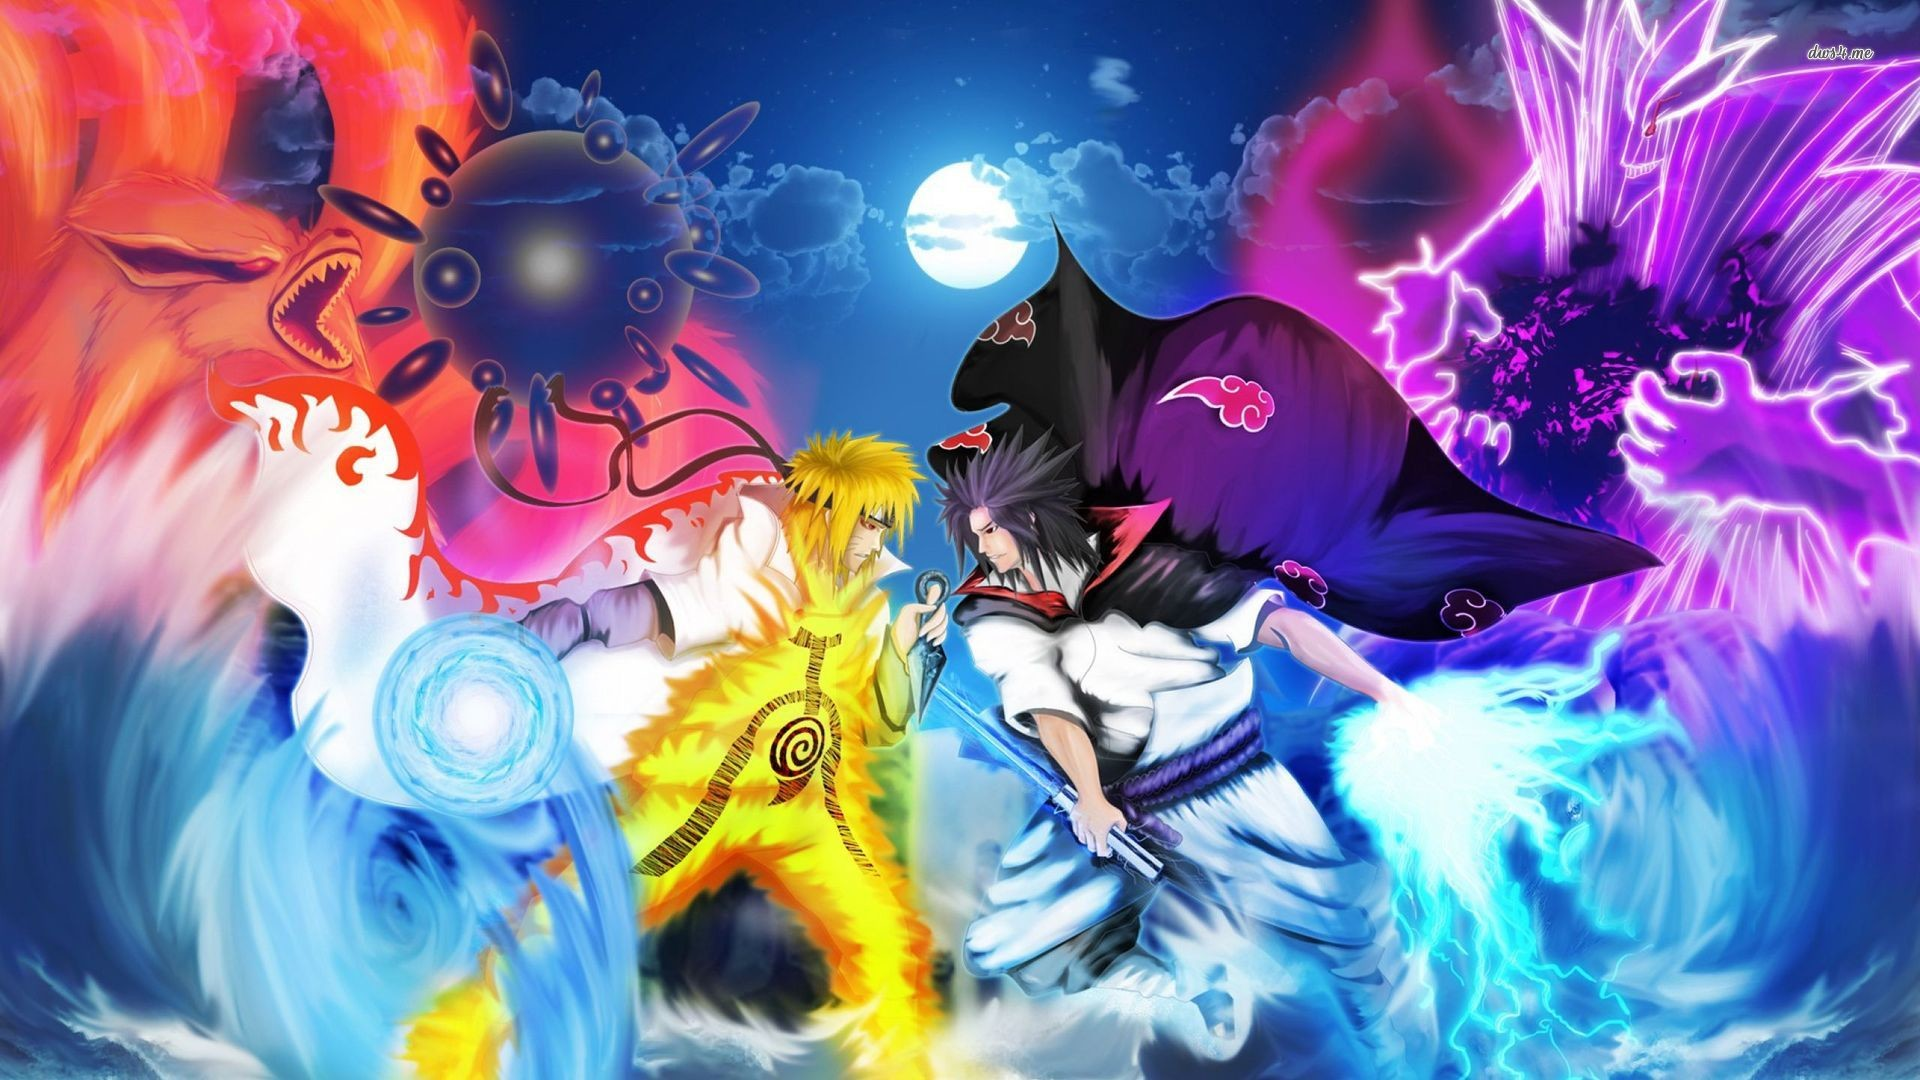 1920x1080 naruto vs sasuke wallpapers desktop wallpapers 4k high definition windows  10 mac apple colourful images backgrounds free 1920×1080 Wallpaper HD